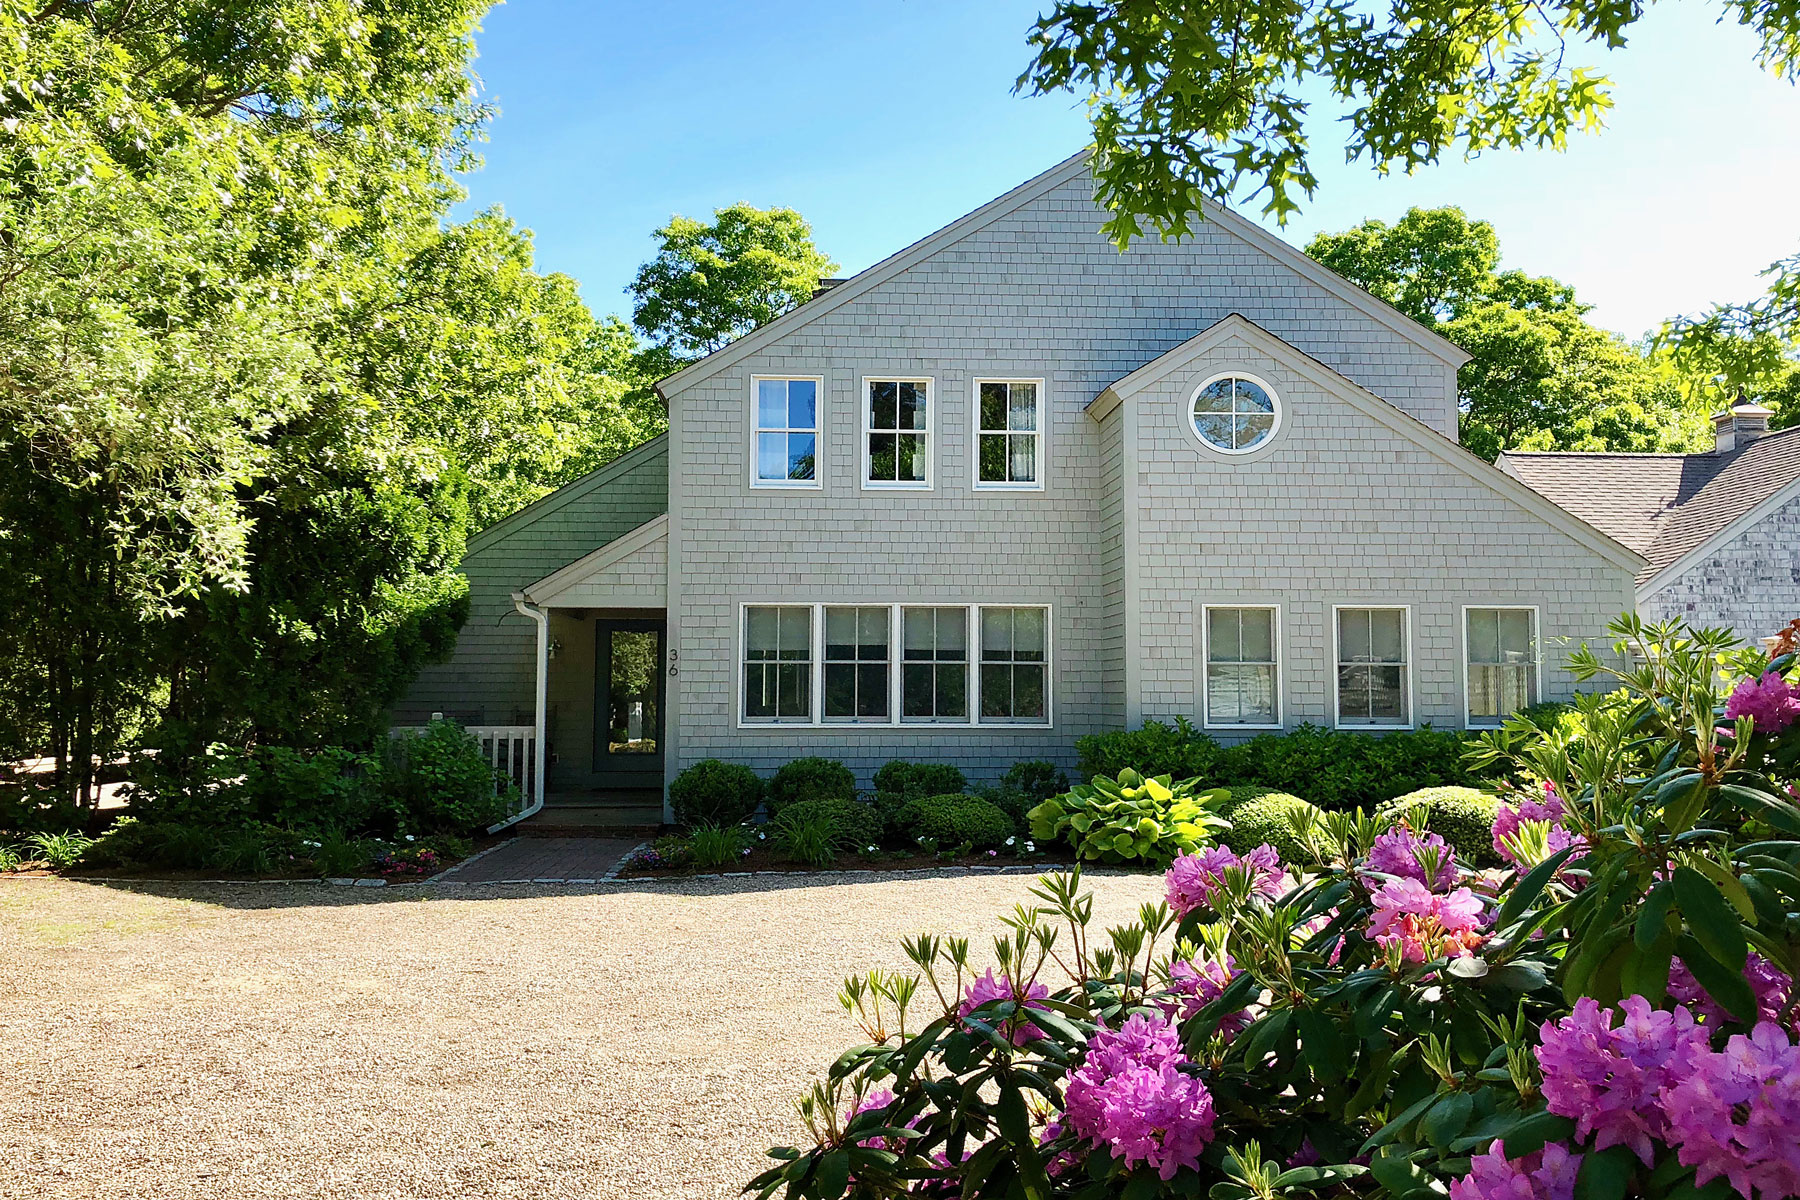 Single Family Home for Active at BRIGHT & OPEN FLOOR PLAN 36 Keel Way New Seabury, Massachusetts 02649 United States